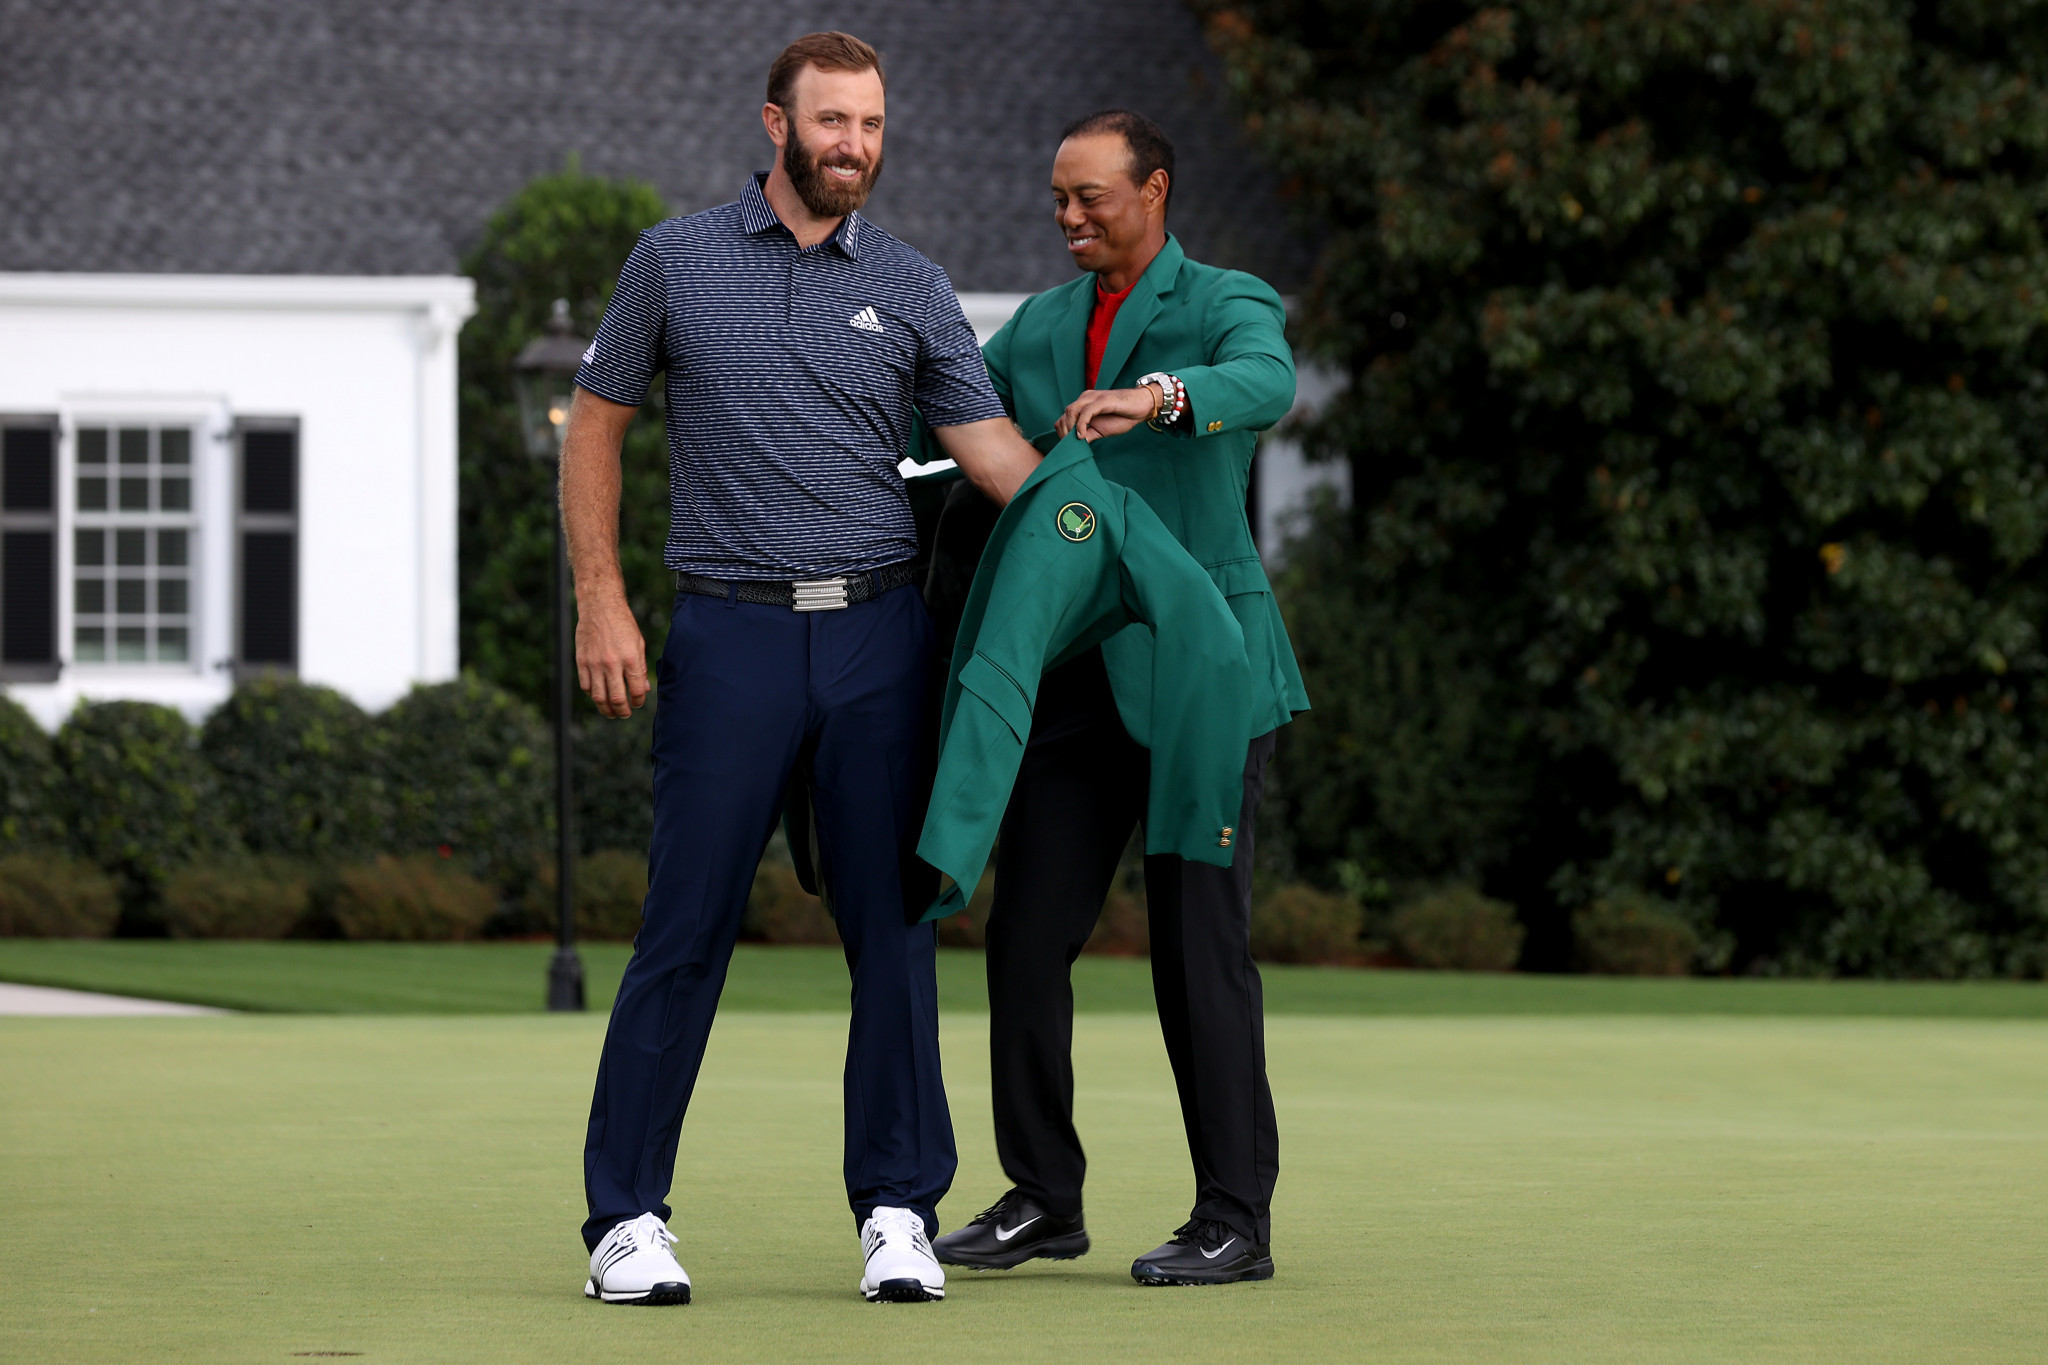 Dustin Johnson receives the green jacket from Tiger Woods after winning The Masters in 2020 ©Getty Images